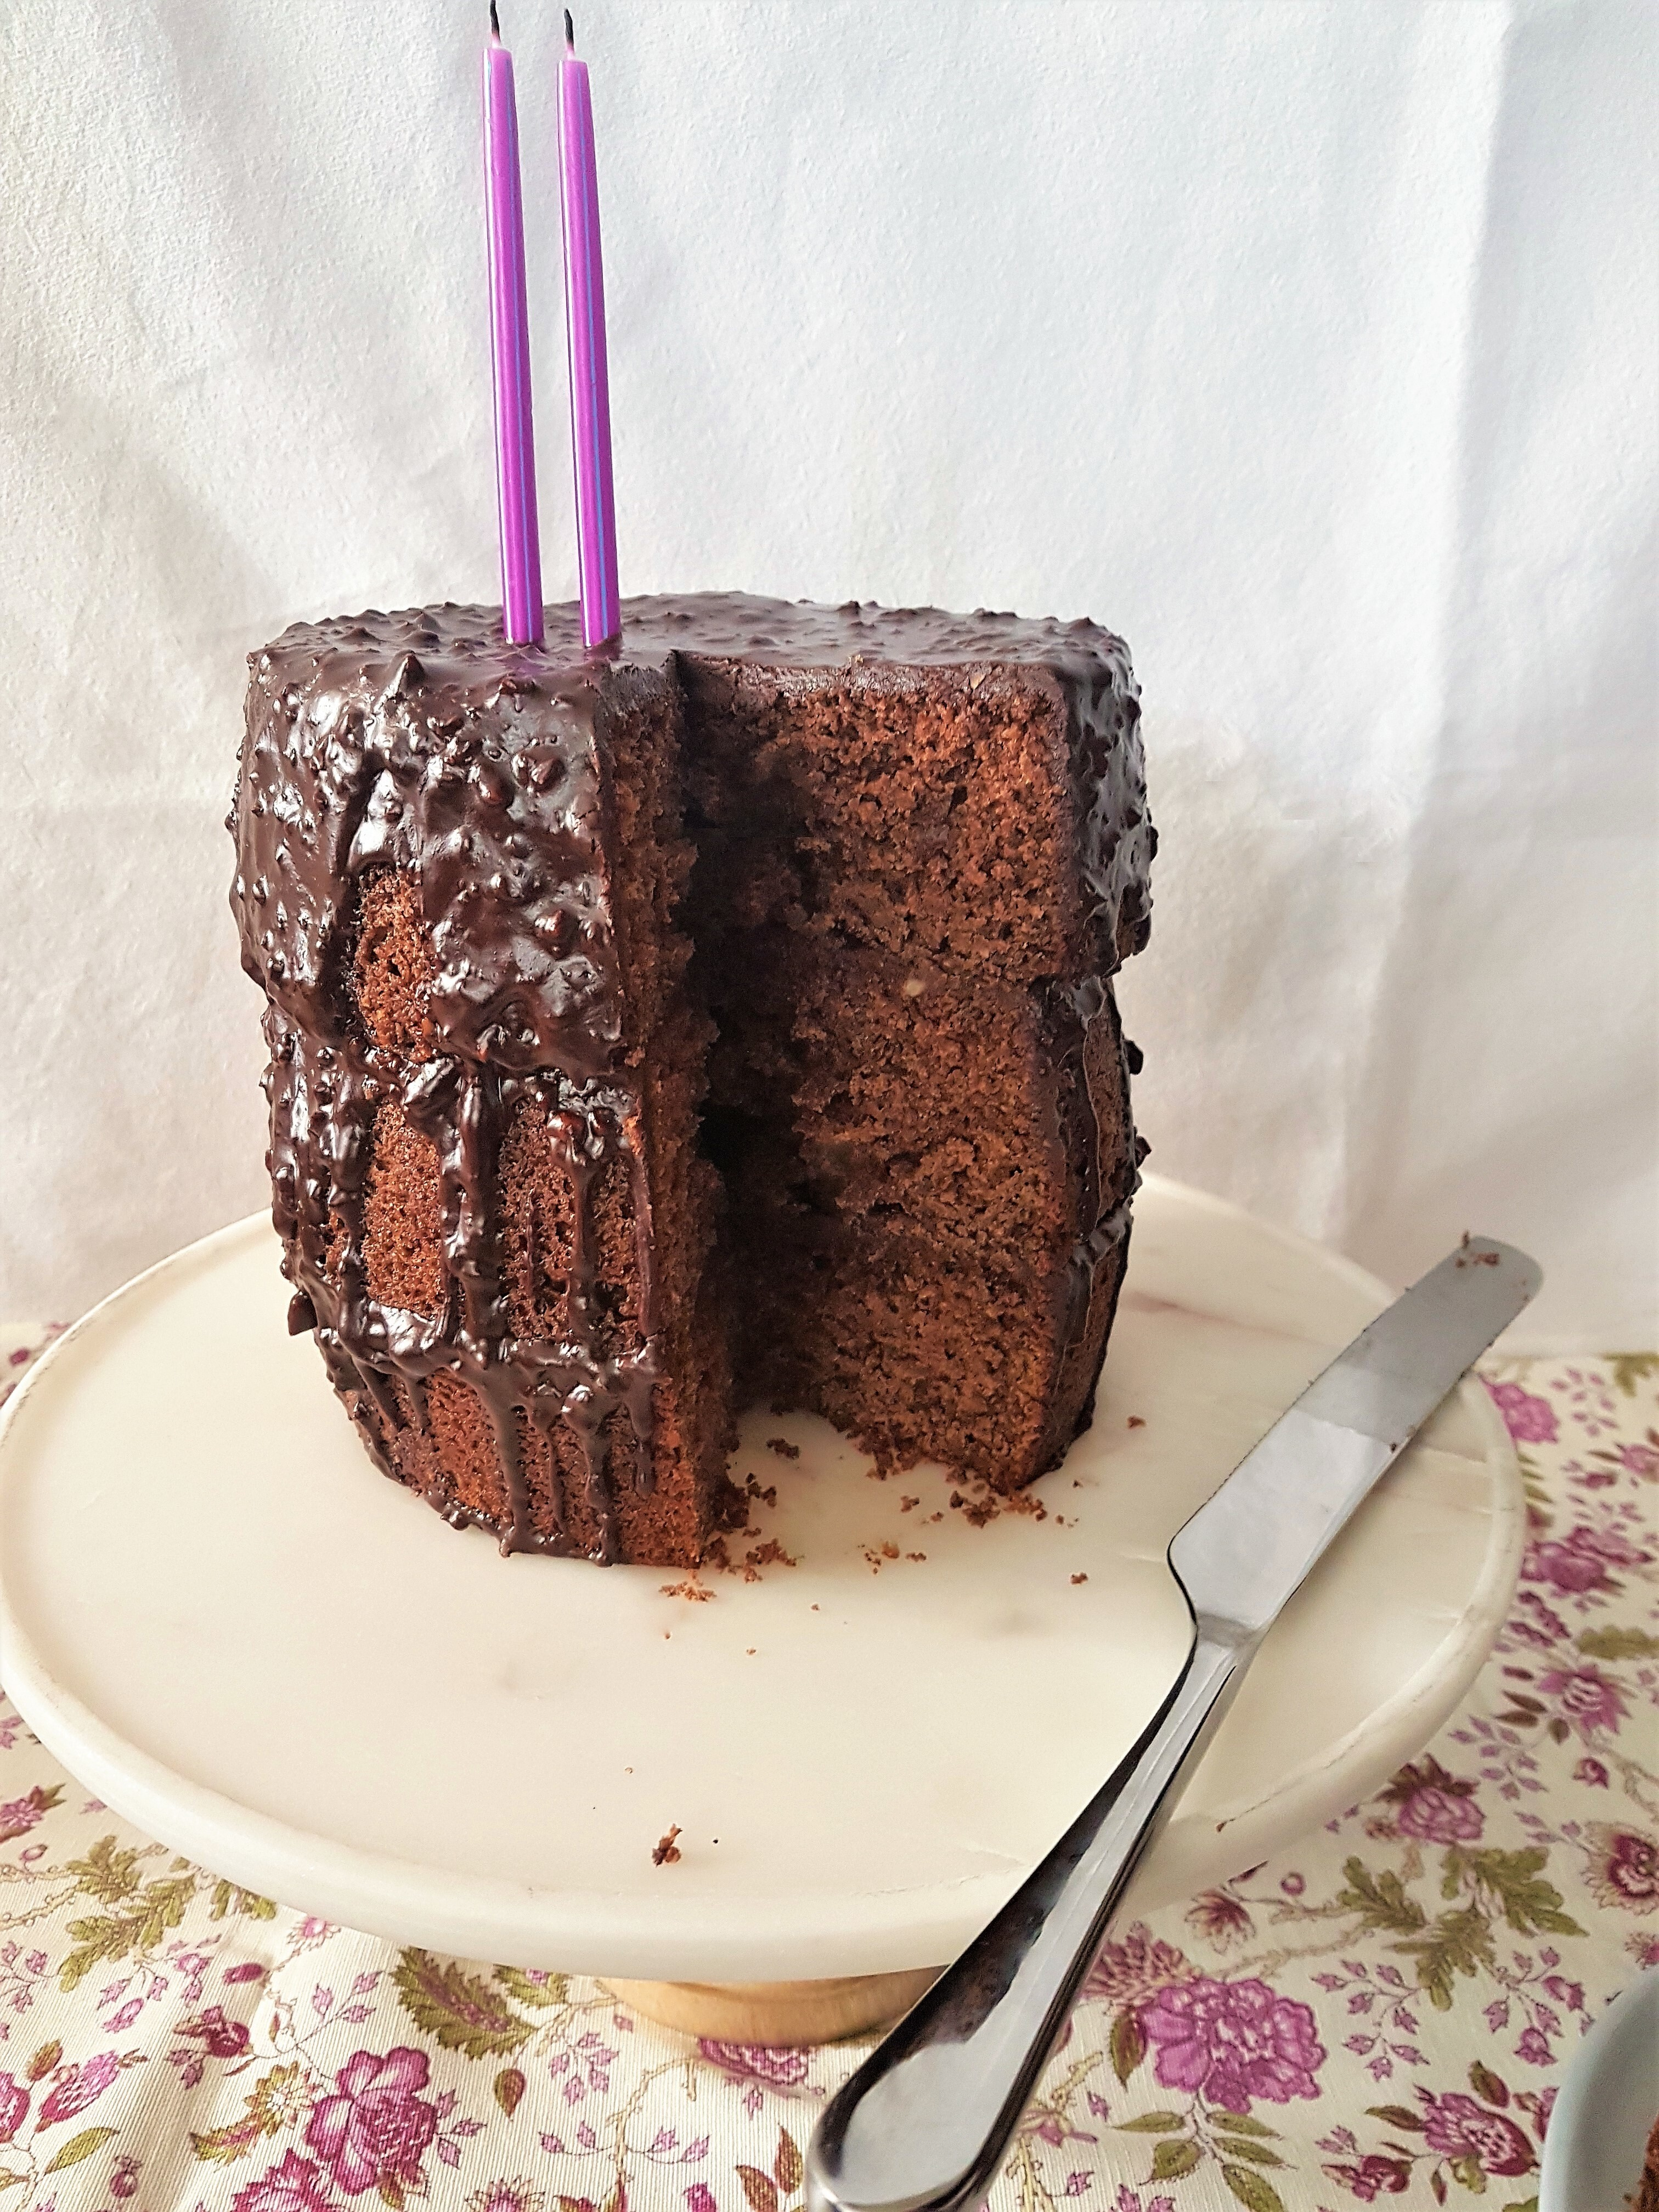 Para festejar pastel de chocolate y espresso con glaseado de chocolate y avellanas/ To celebrate a chocolate and espresso cake with a chocolate and hazelnut glaze